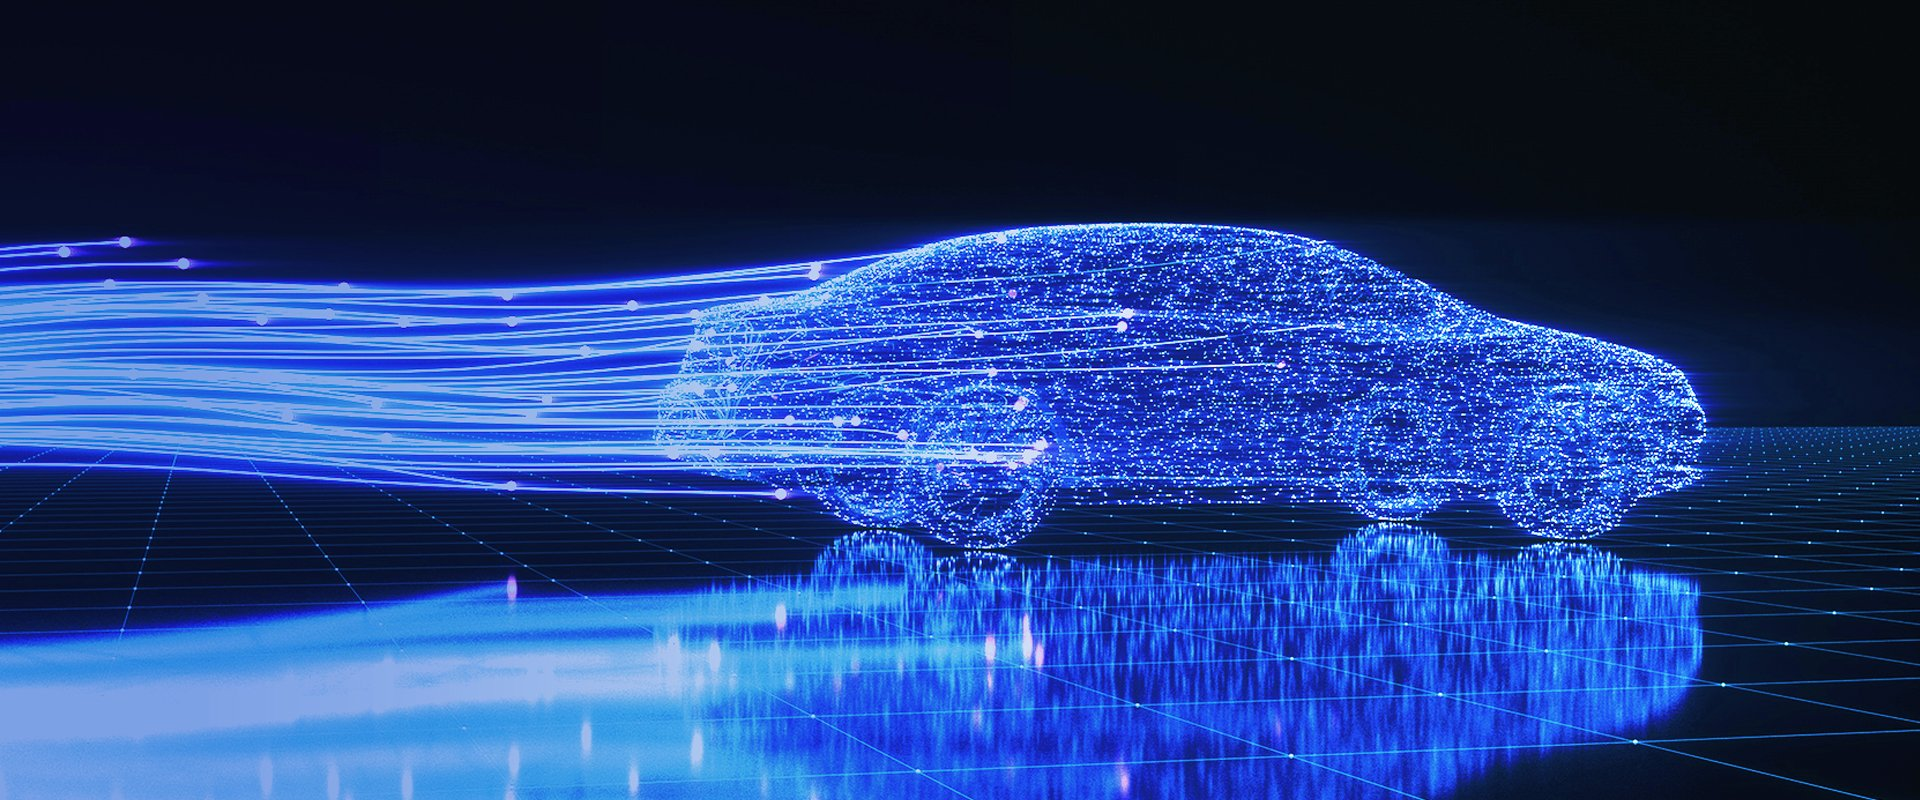 The digital car - Image of a car made of light in the dark.